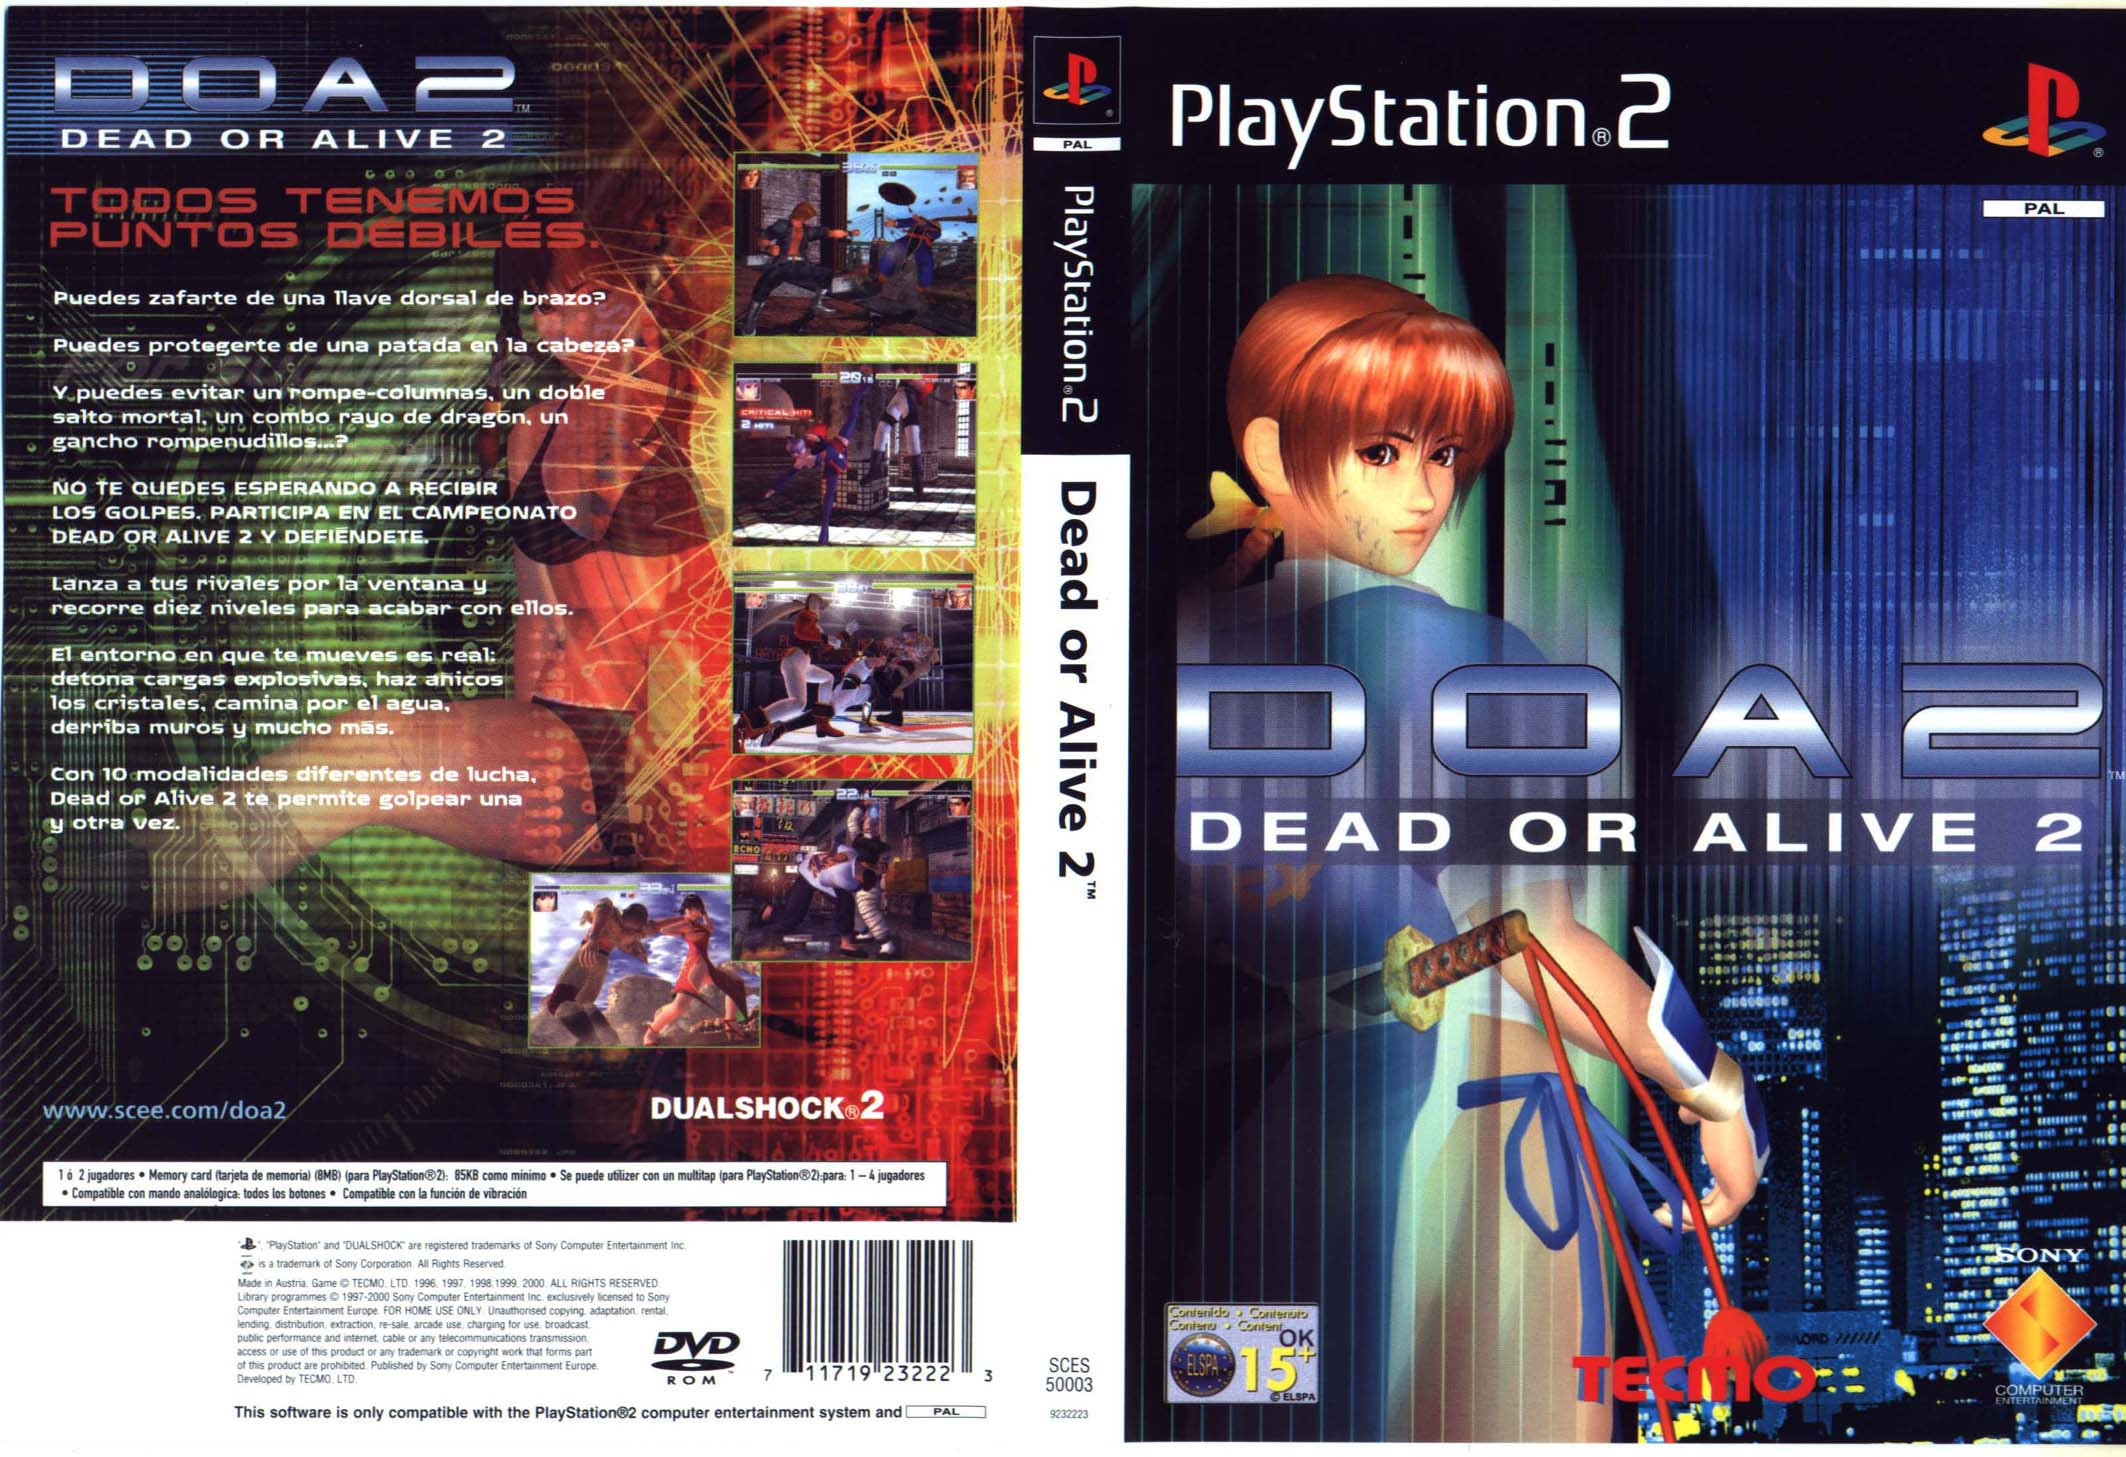 Dead or Alive 2 (Europe) (En,Fr,De,Es,It) ISO < PS2 ISOs | Emuparadise